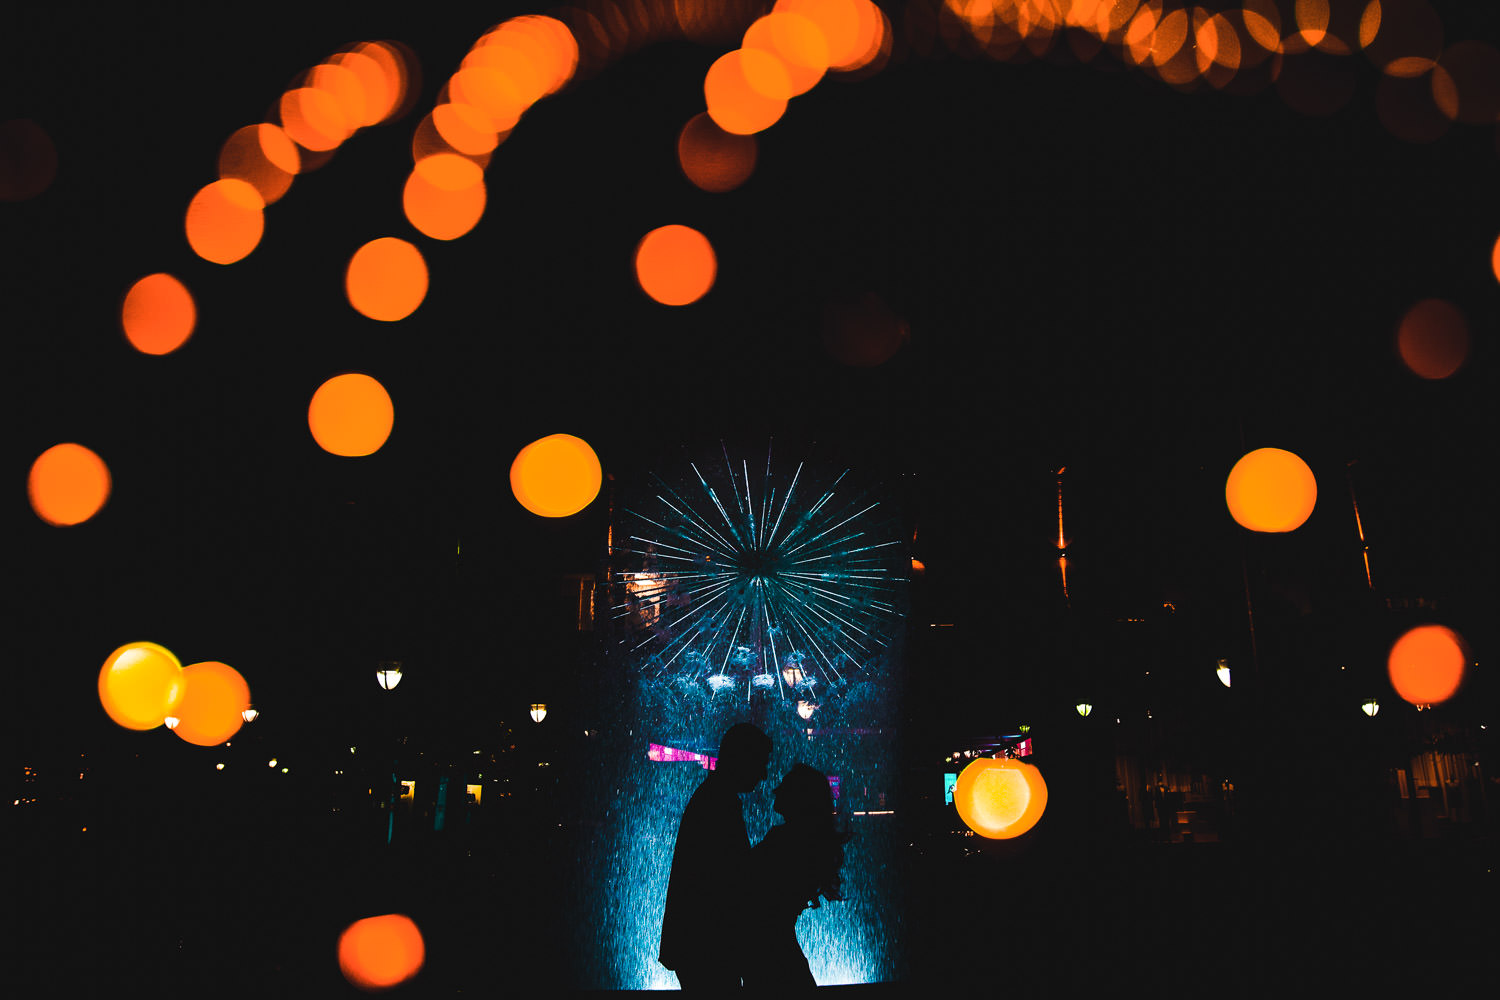 Silhouette of couple embracing in front of artistic water fountain